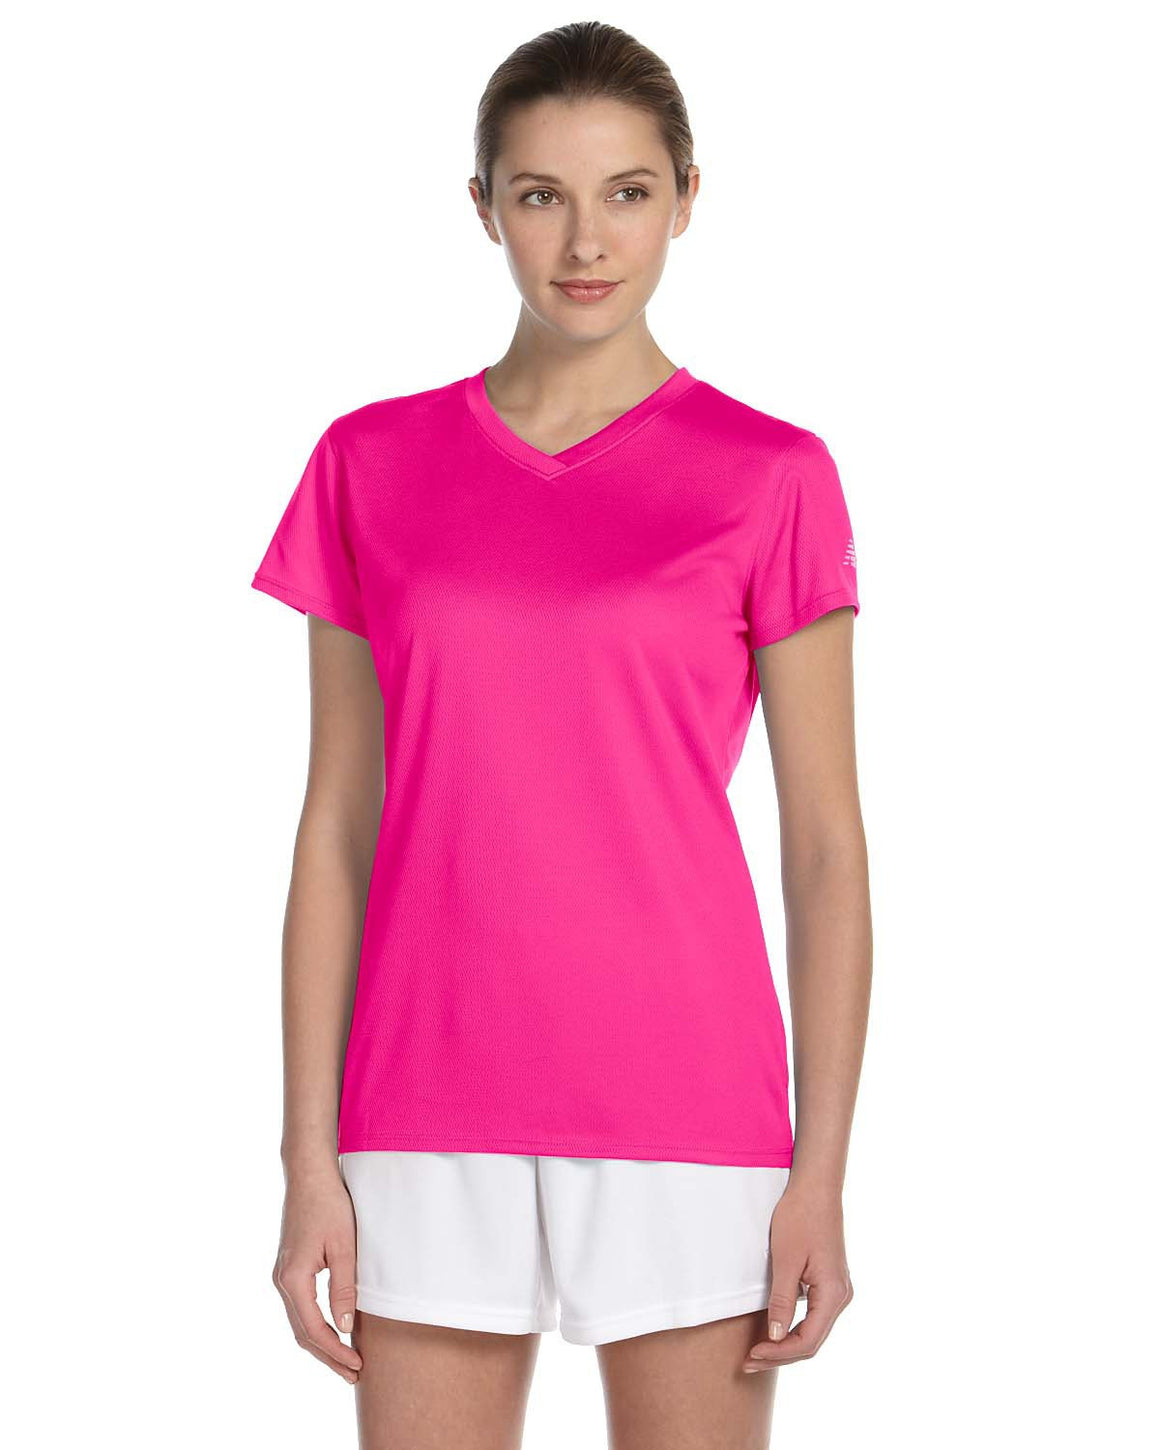 New Balance Ladies' Athletic V-Neck Short Sleeve Tech Tee